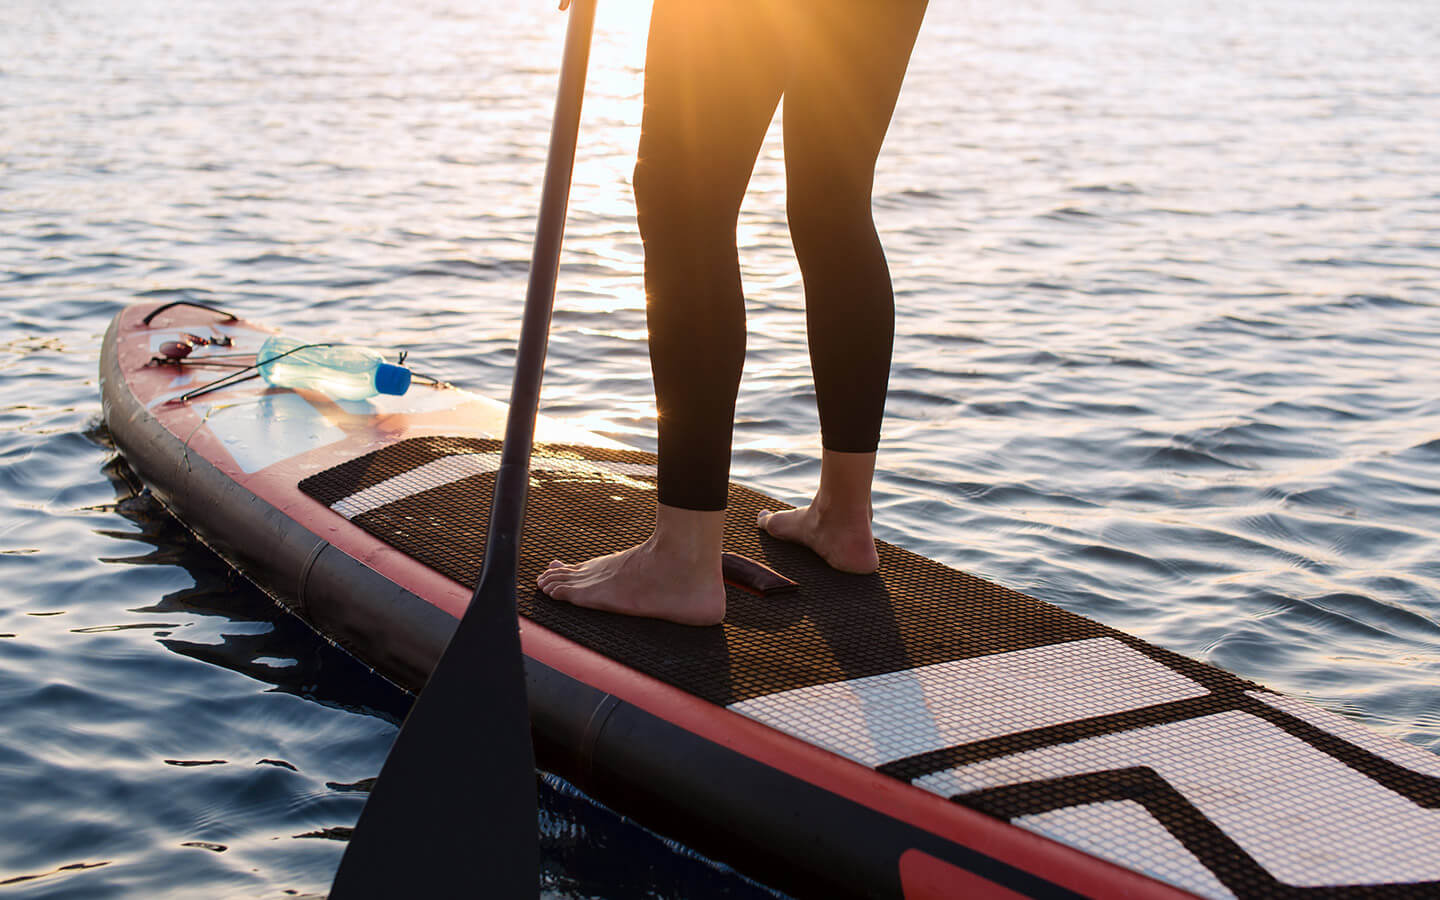 Paddleboarding in Falmouth, MA